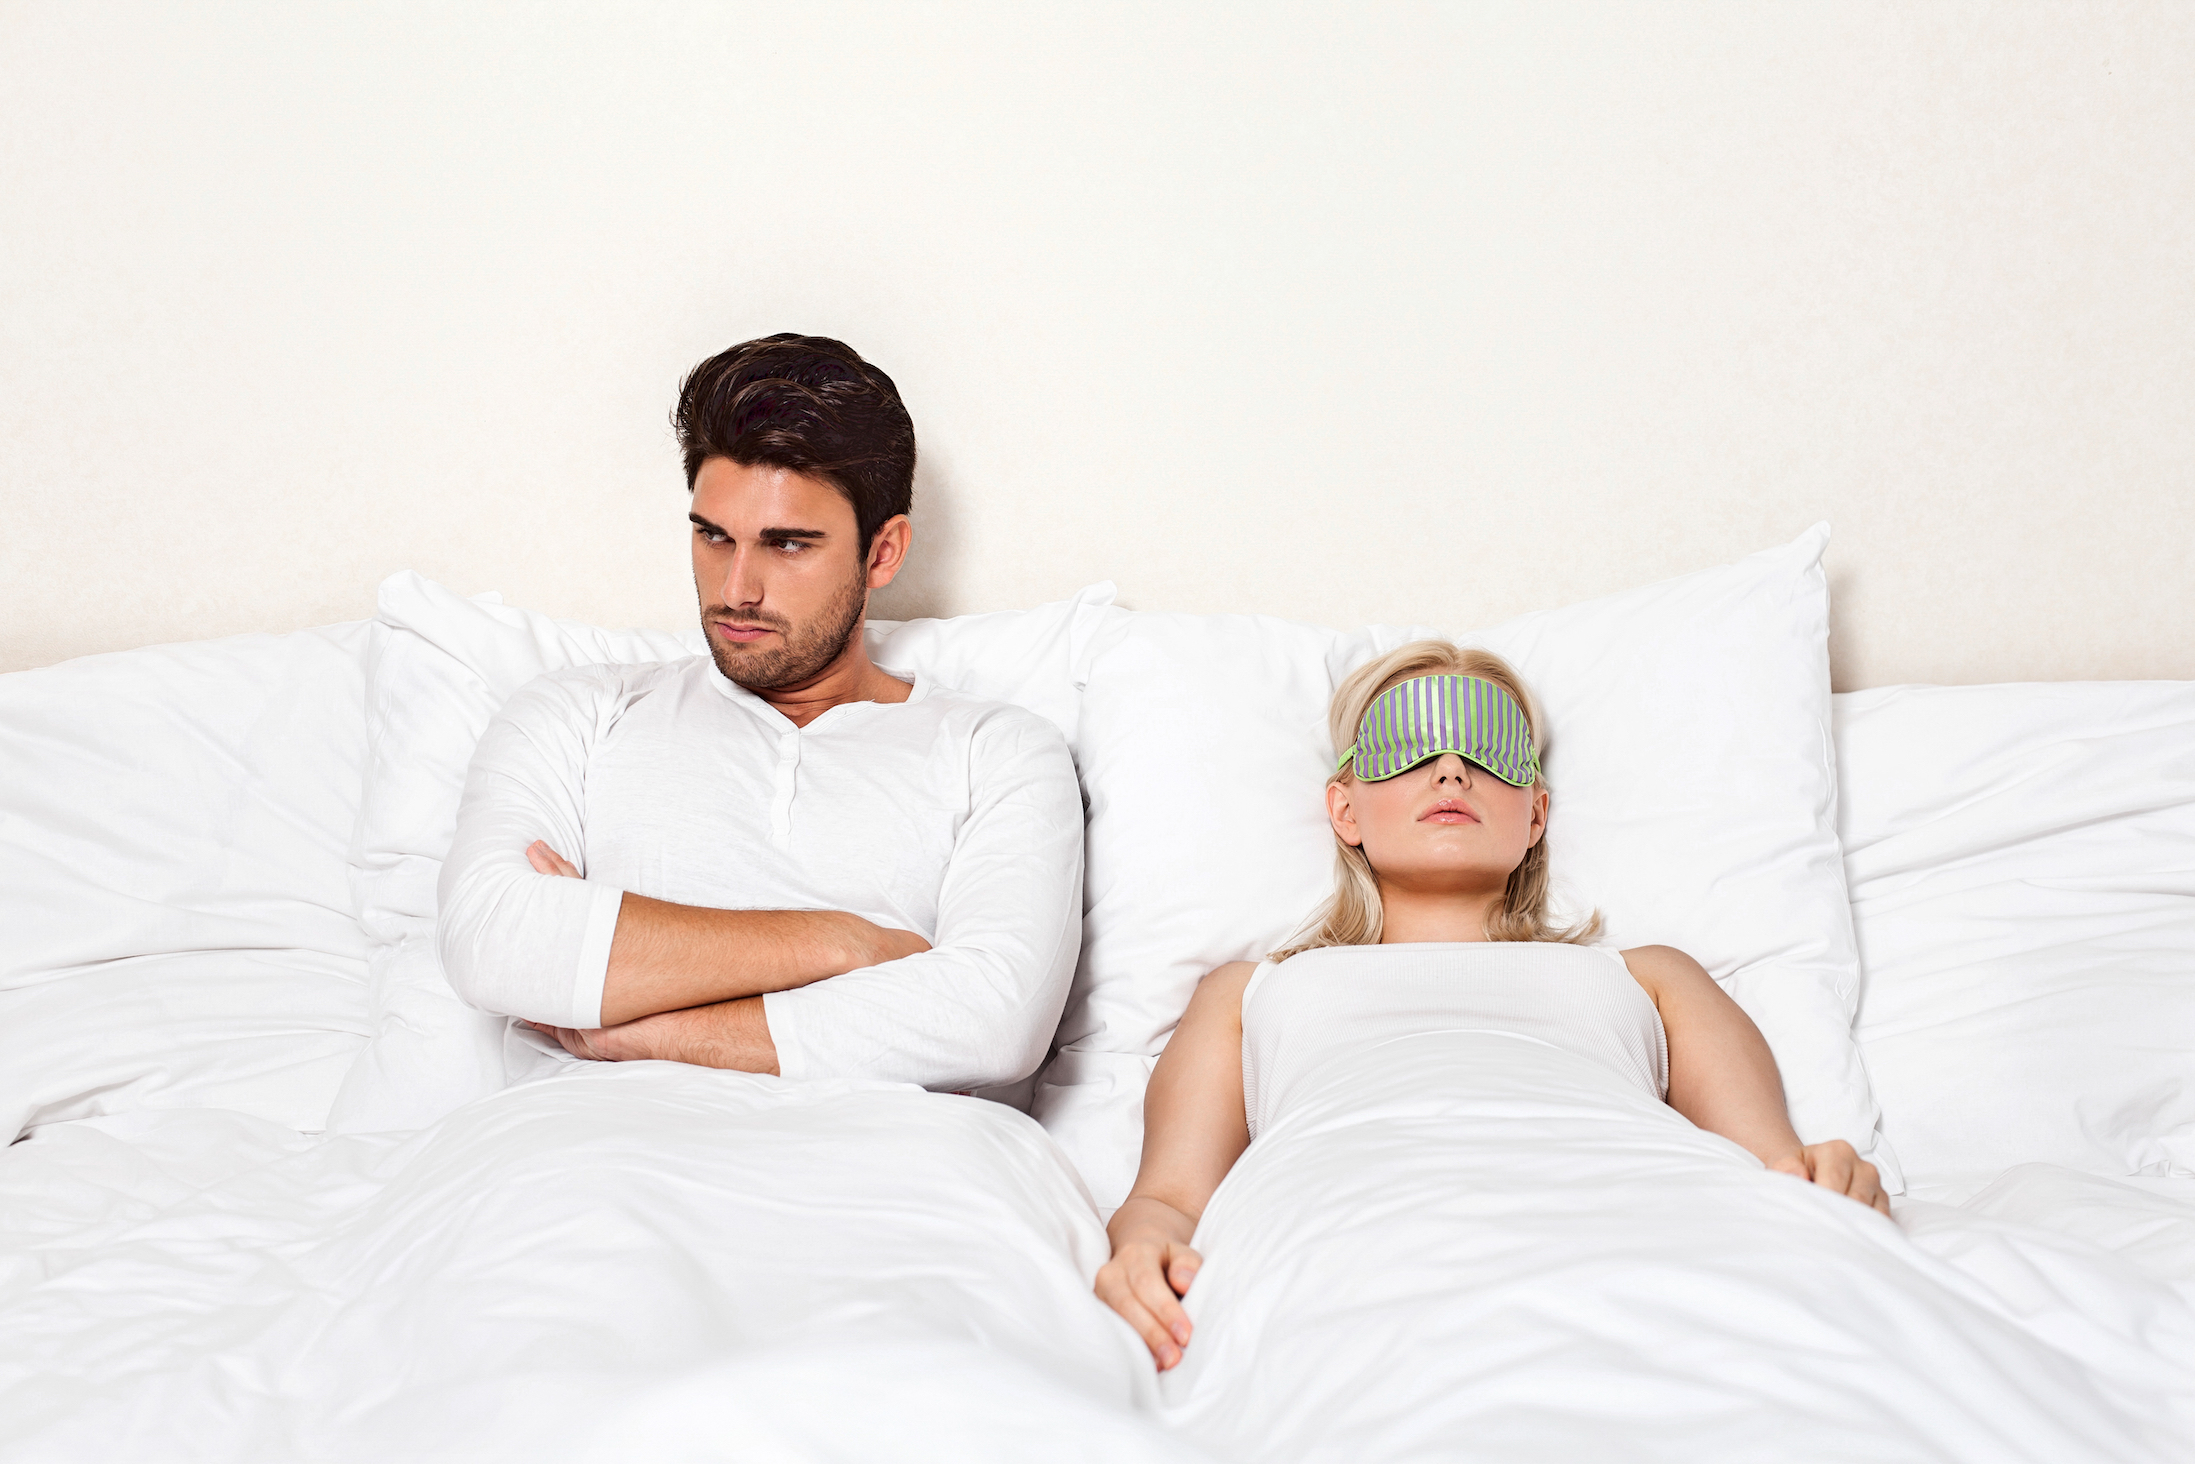 A new study has found that going to bed angry and irritated can lead to poor memory performance and memory suppression.